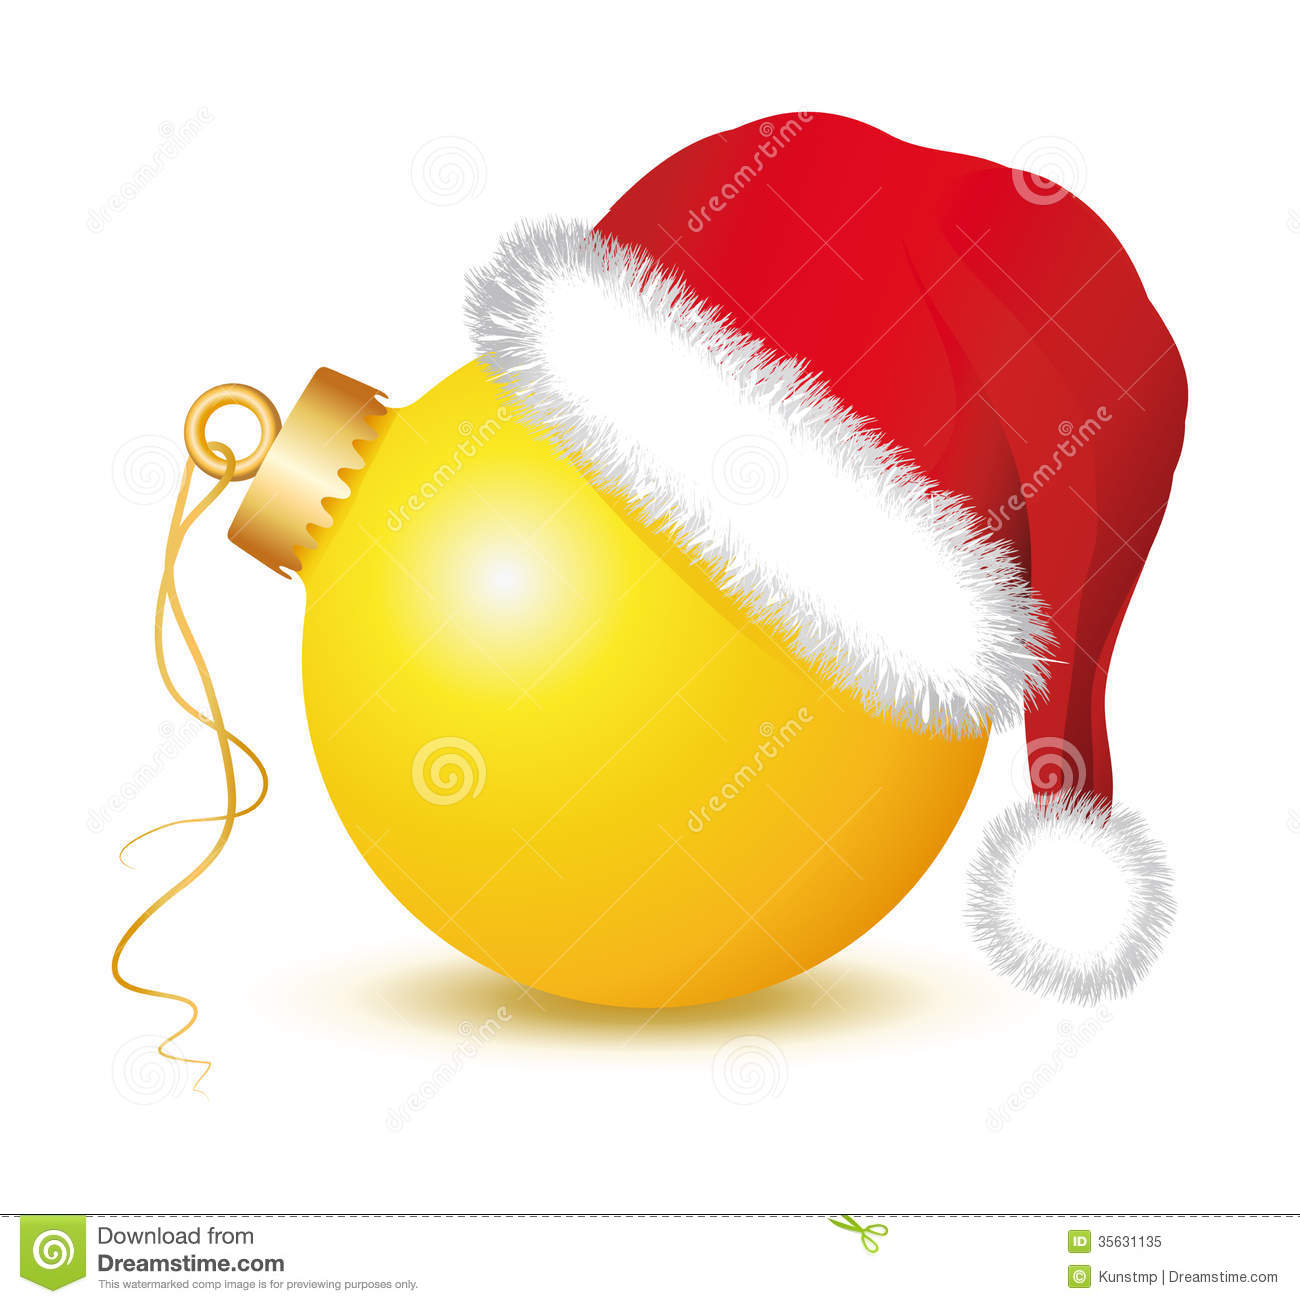 yellow christmas baubles santa claus hat golden ball ball red red cap fir twigs ornament white background advent 35631135